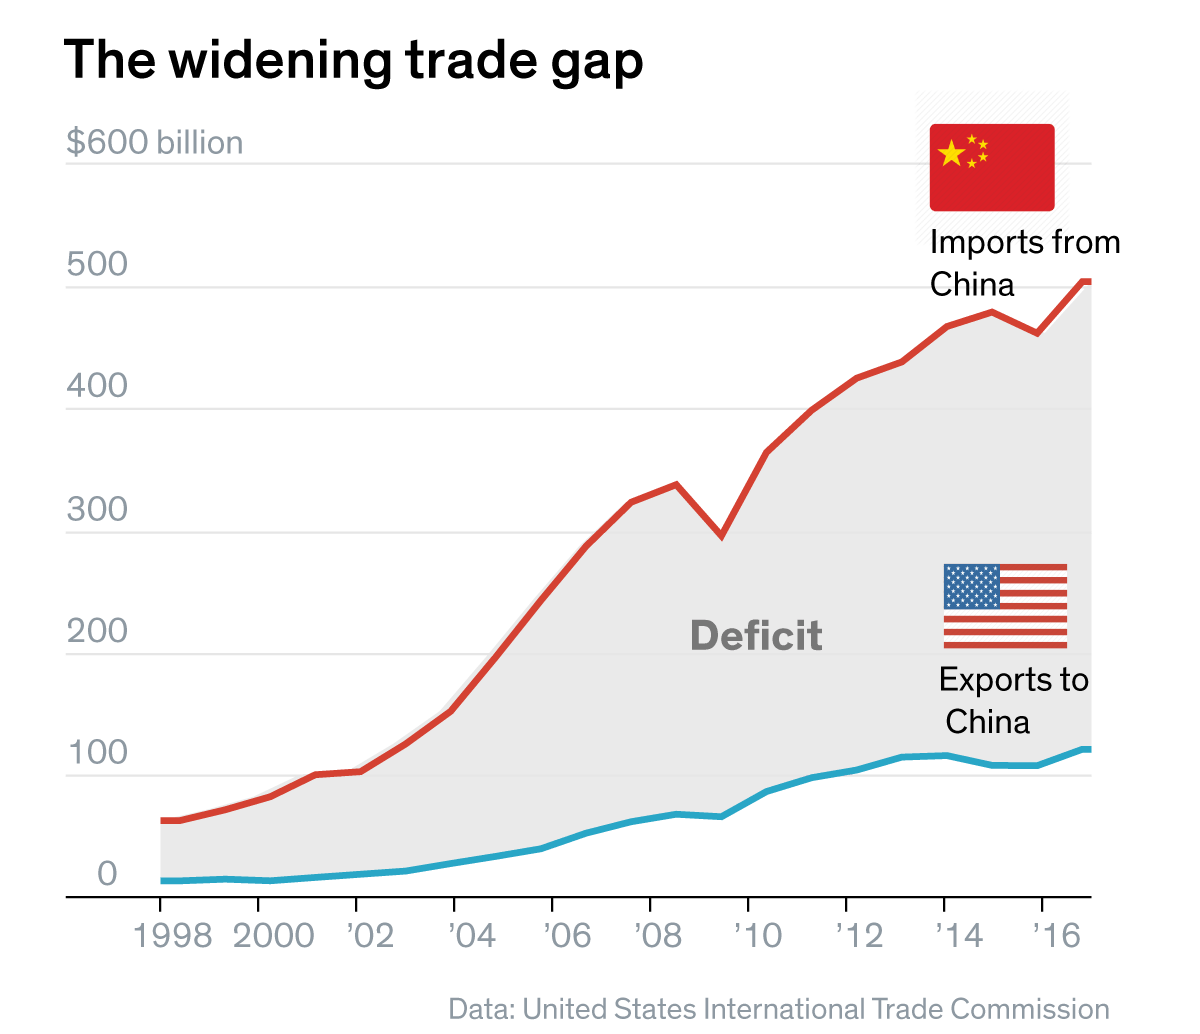 No previous American President has been able to stop the growing trade deficits with China